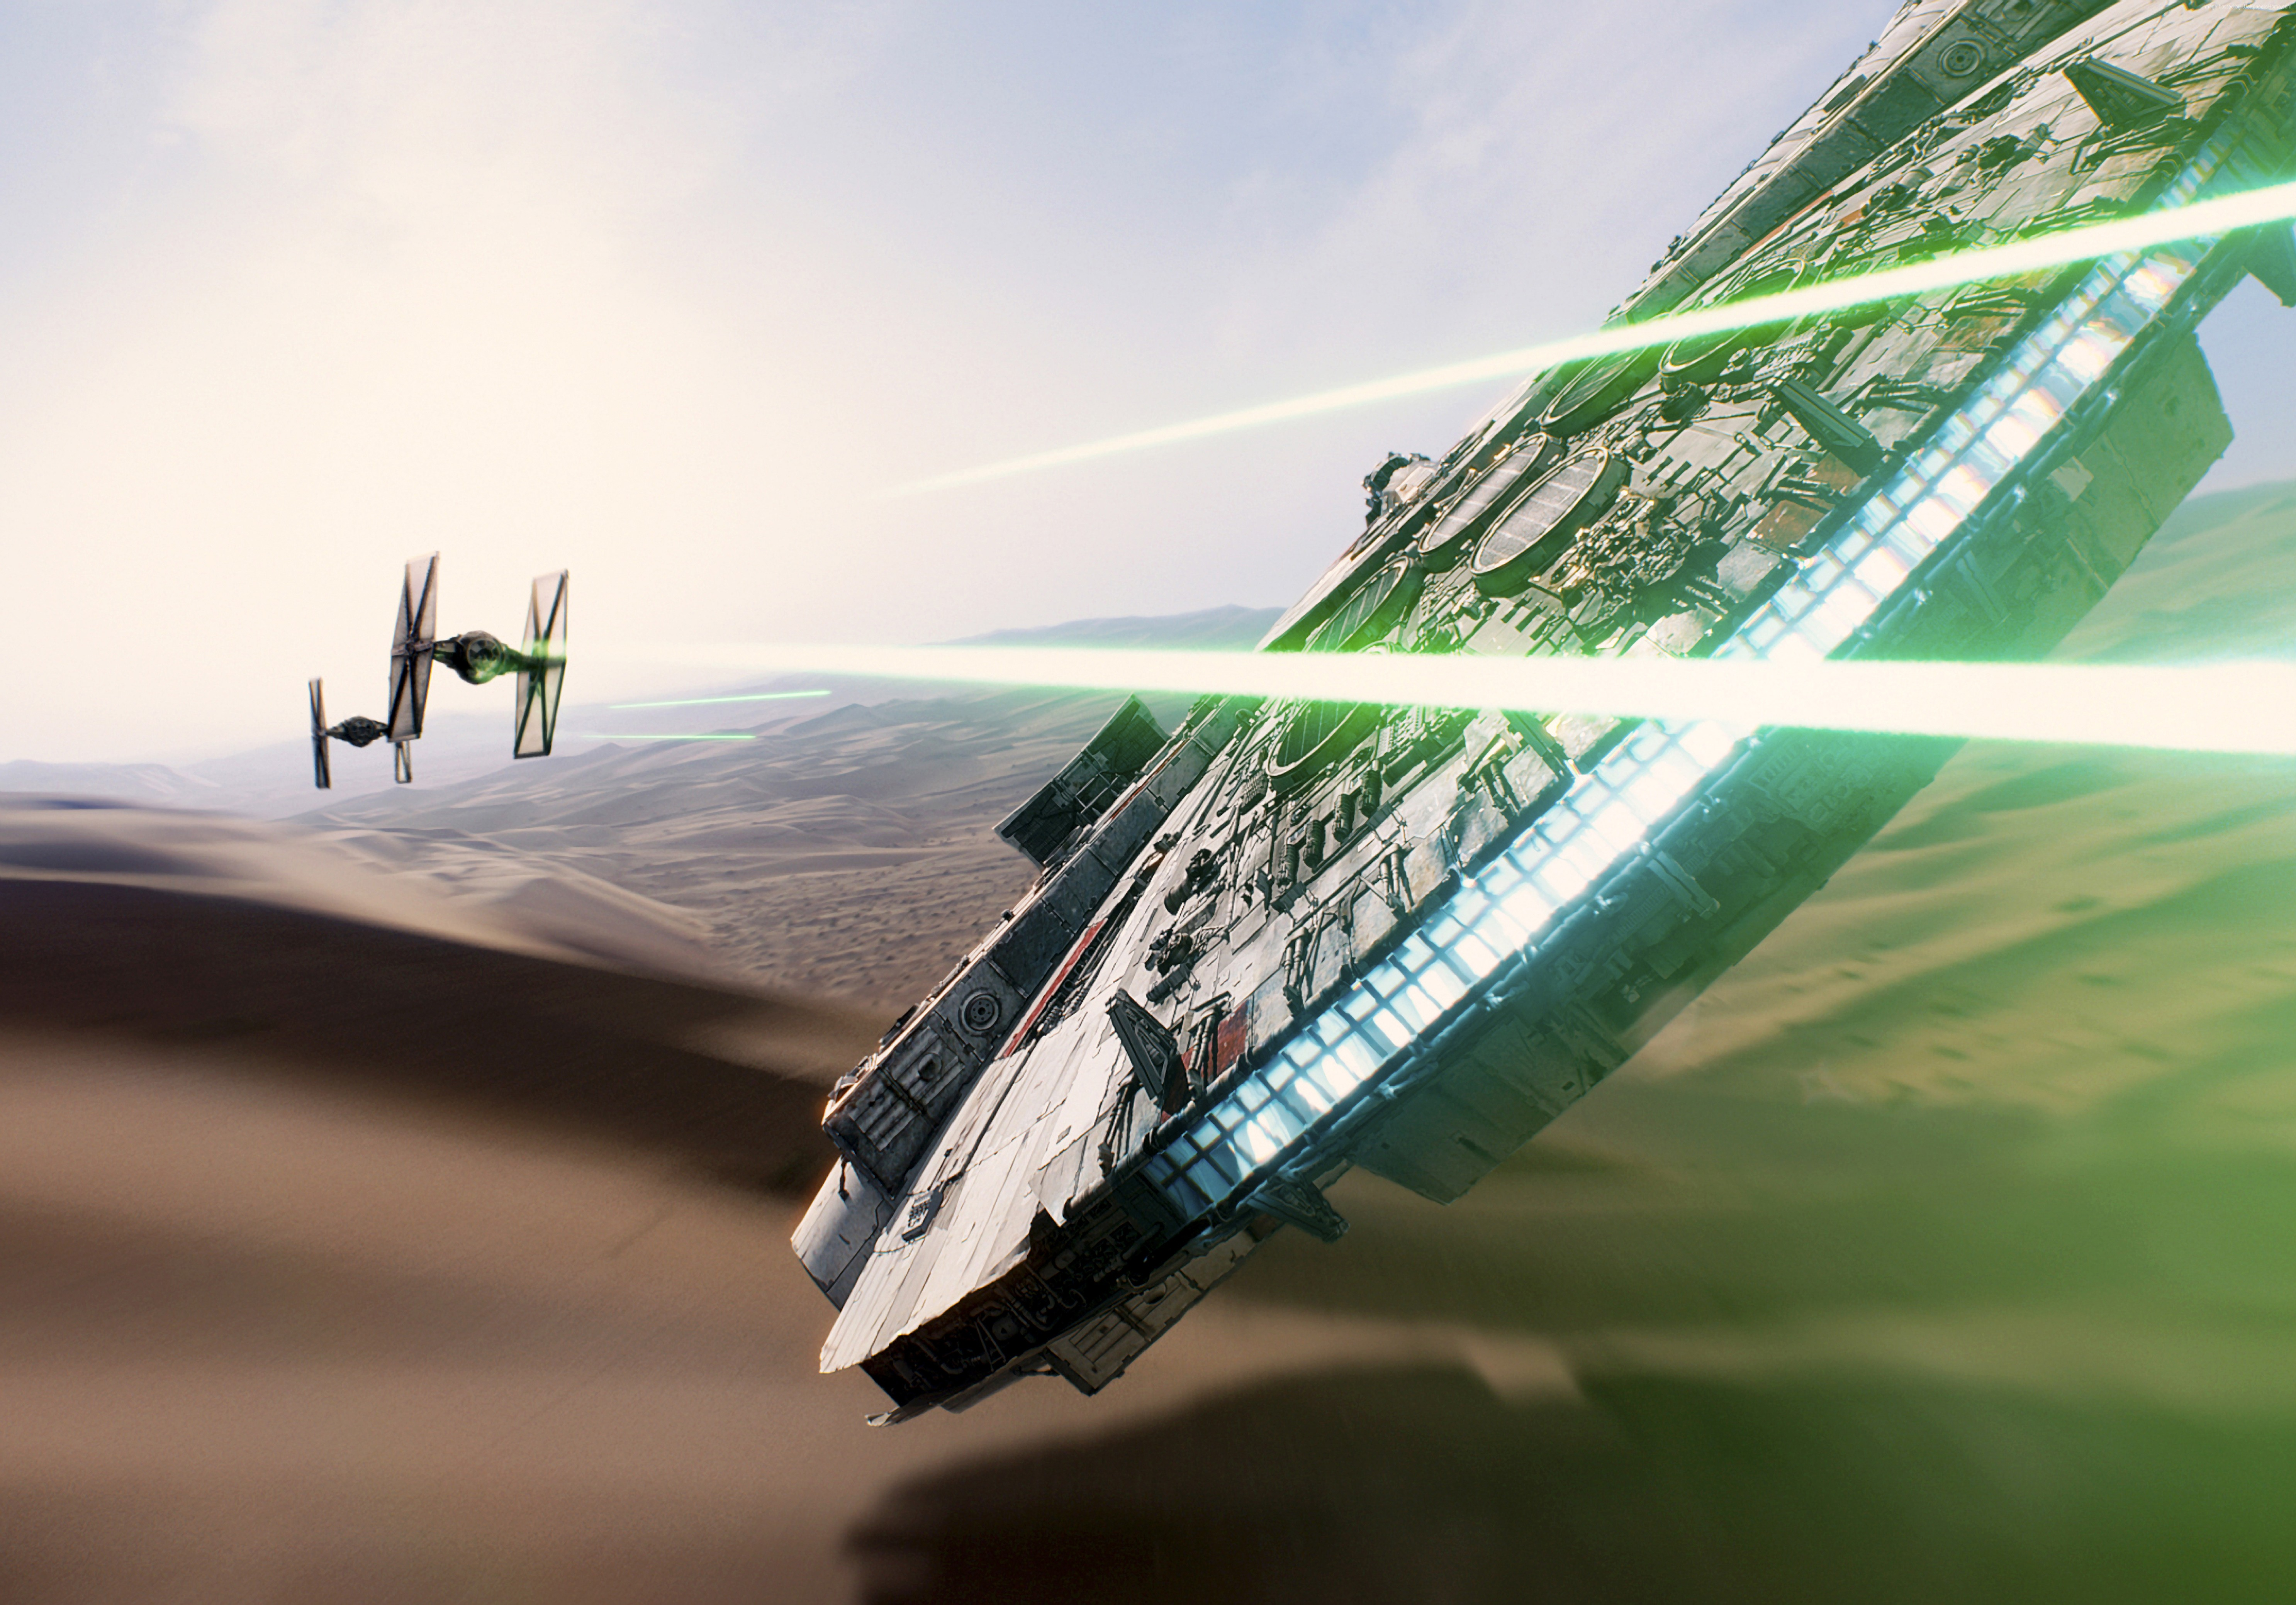 star wars: the force awakens wallpapers, pictures, images